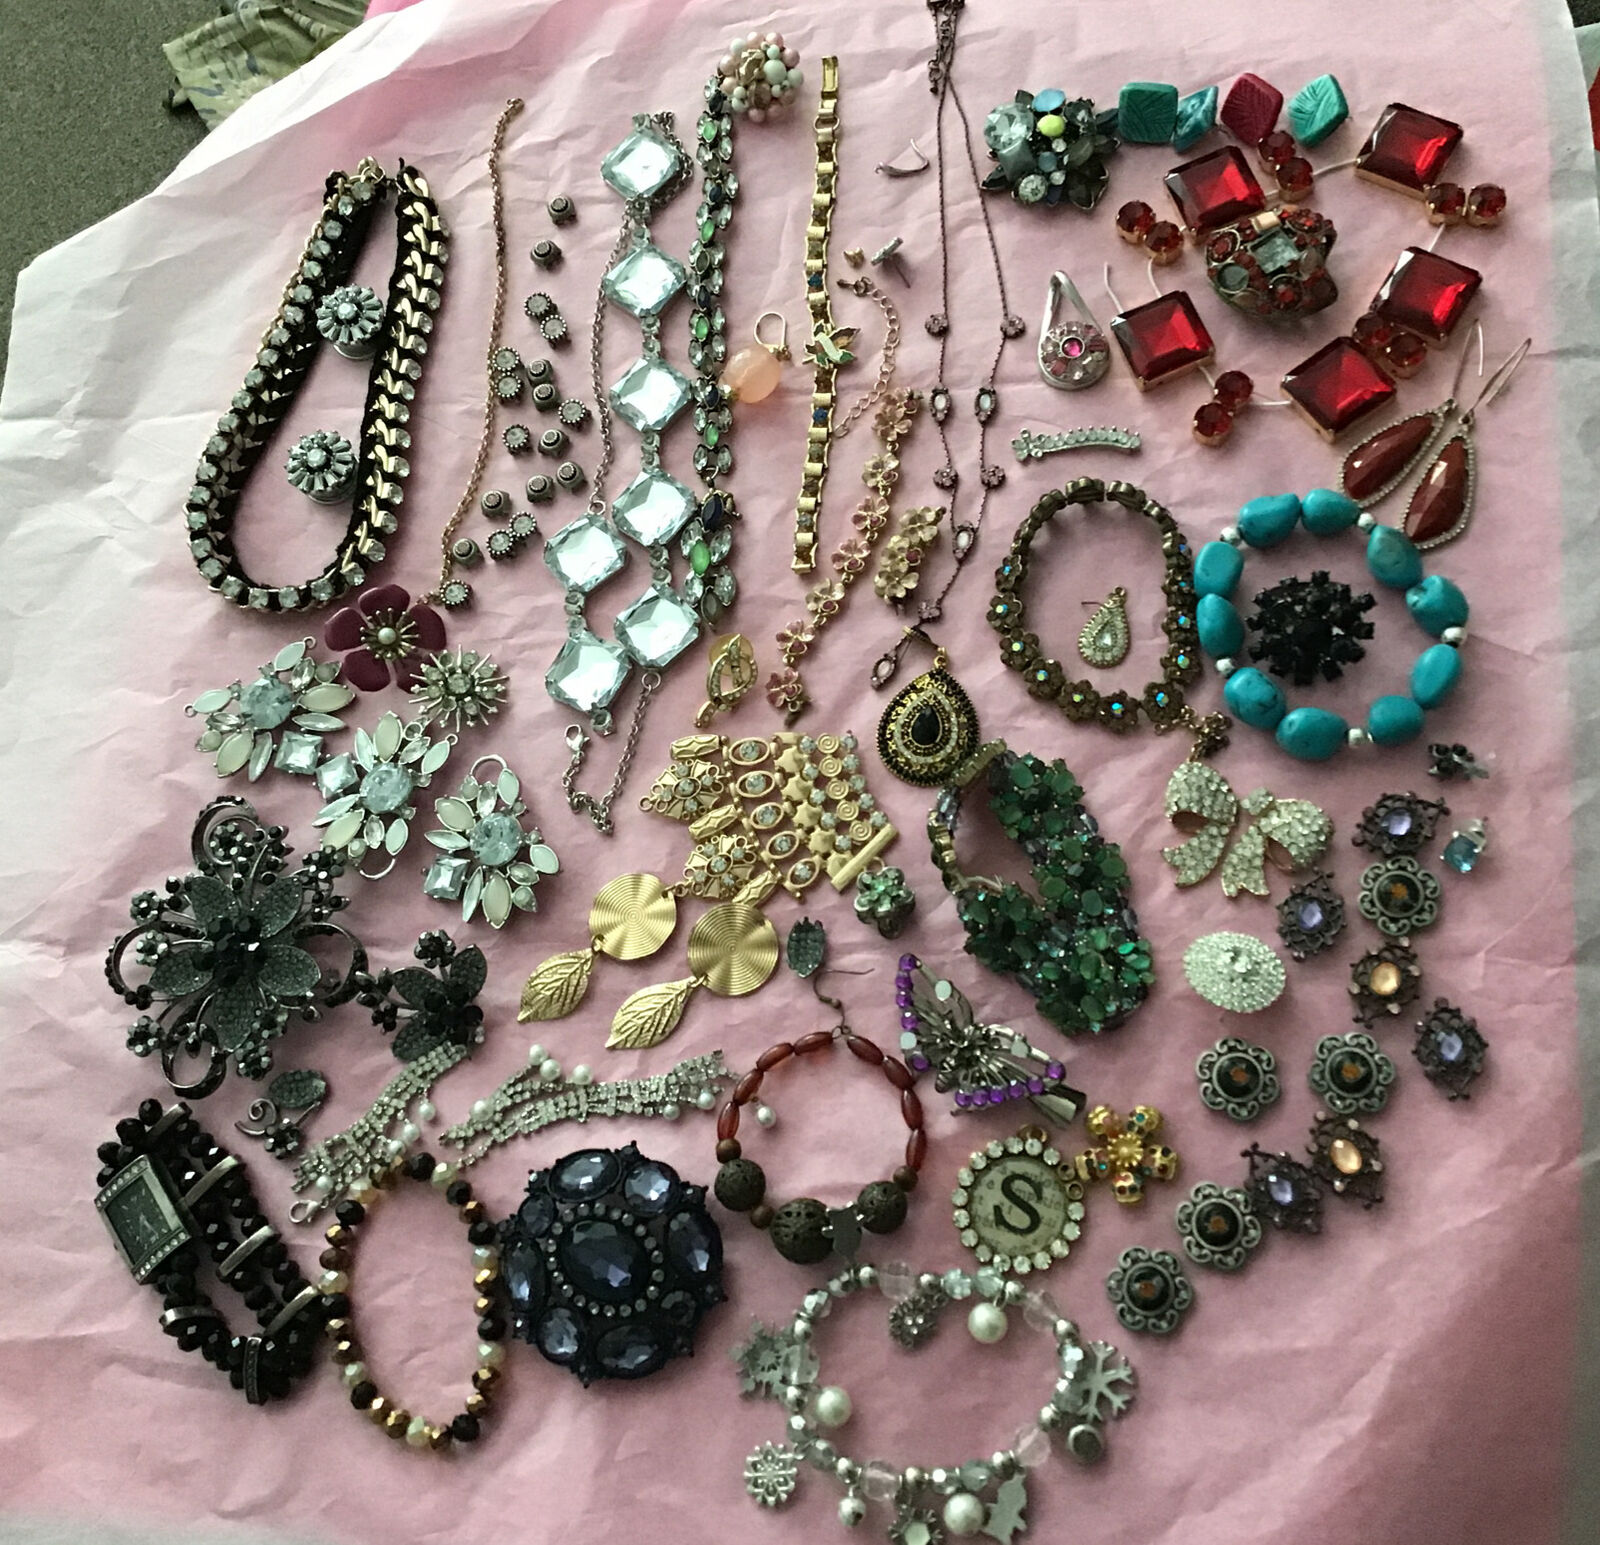 Mixed Jewelry Accessory Craft Lot Broken Wearable for Repair & Repurpose